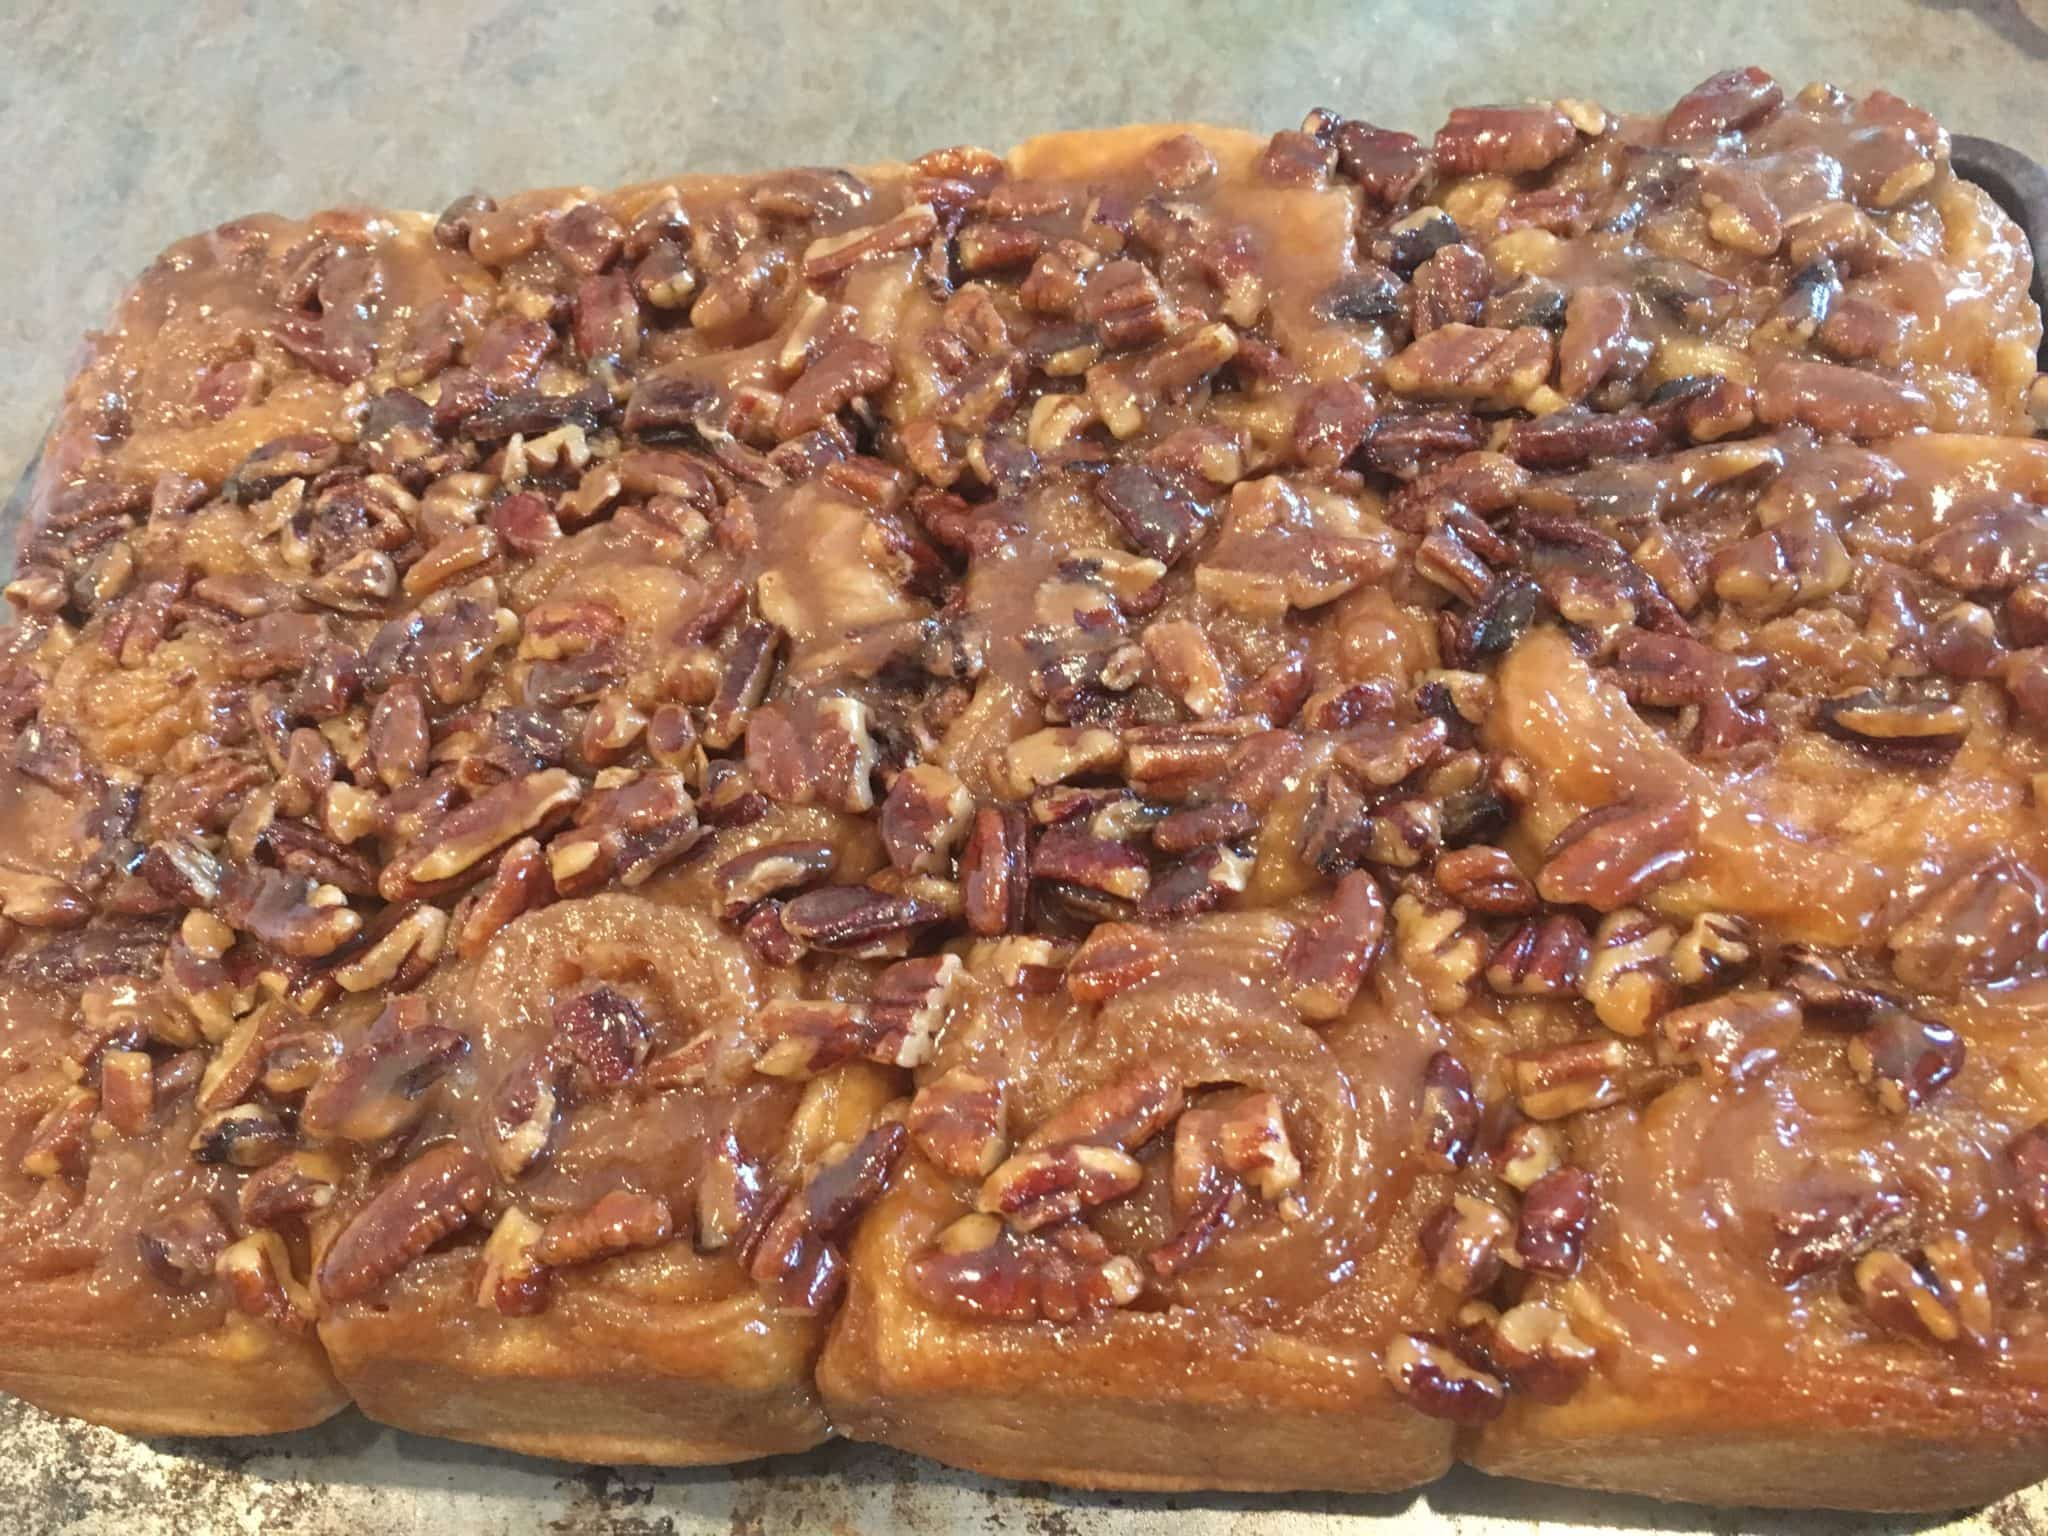 sticky buns out of the oven